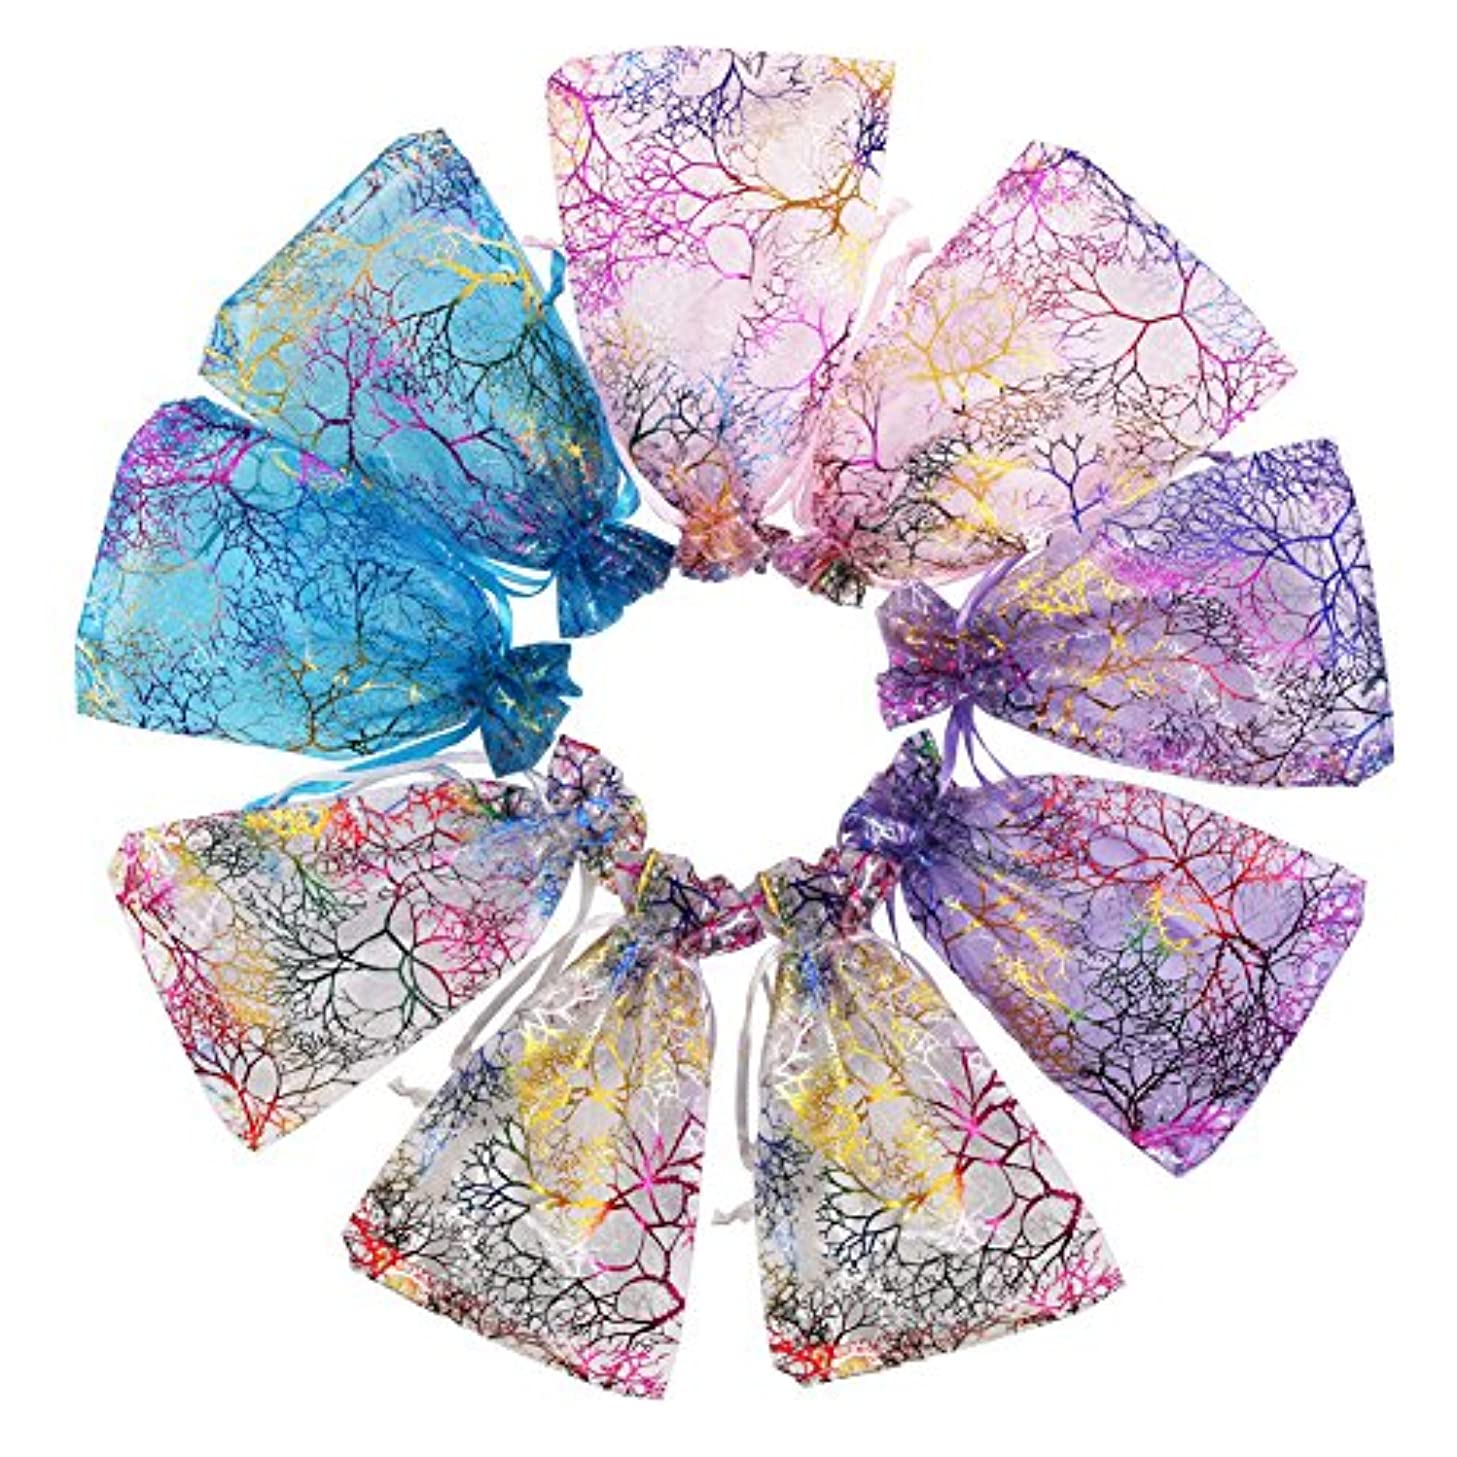 SumDirect Mixed Color Coralline Organza Gift Bags, Wedding Favor Party Jewelry Candy Pouches,5x7 Inches,Pack of 100